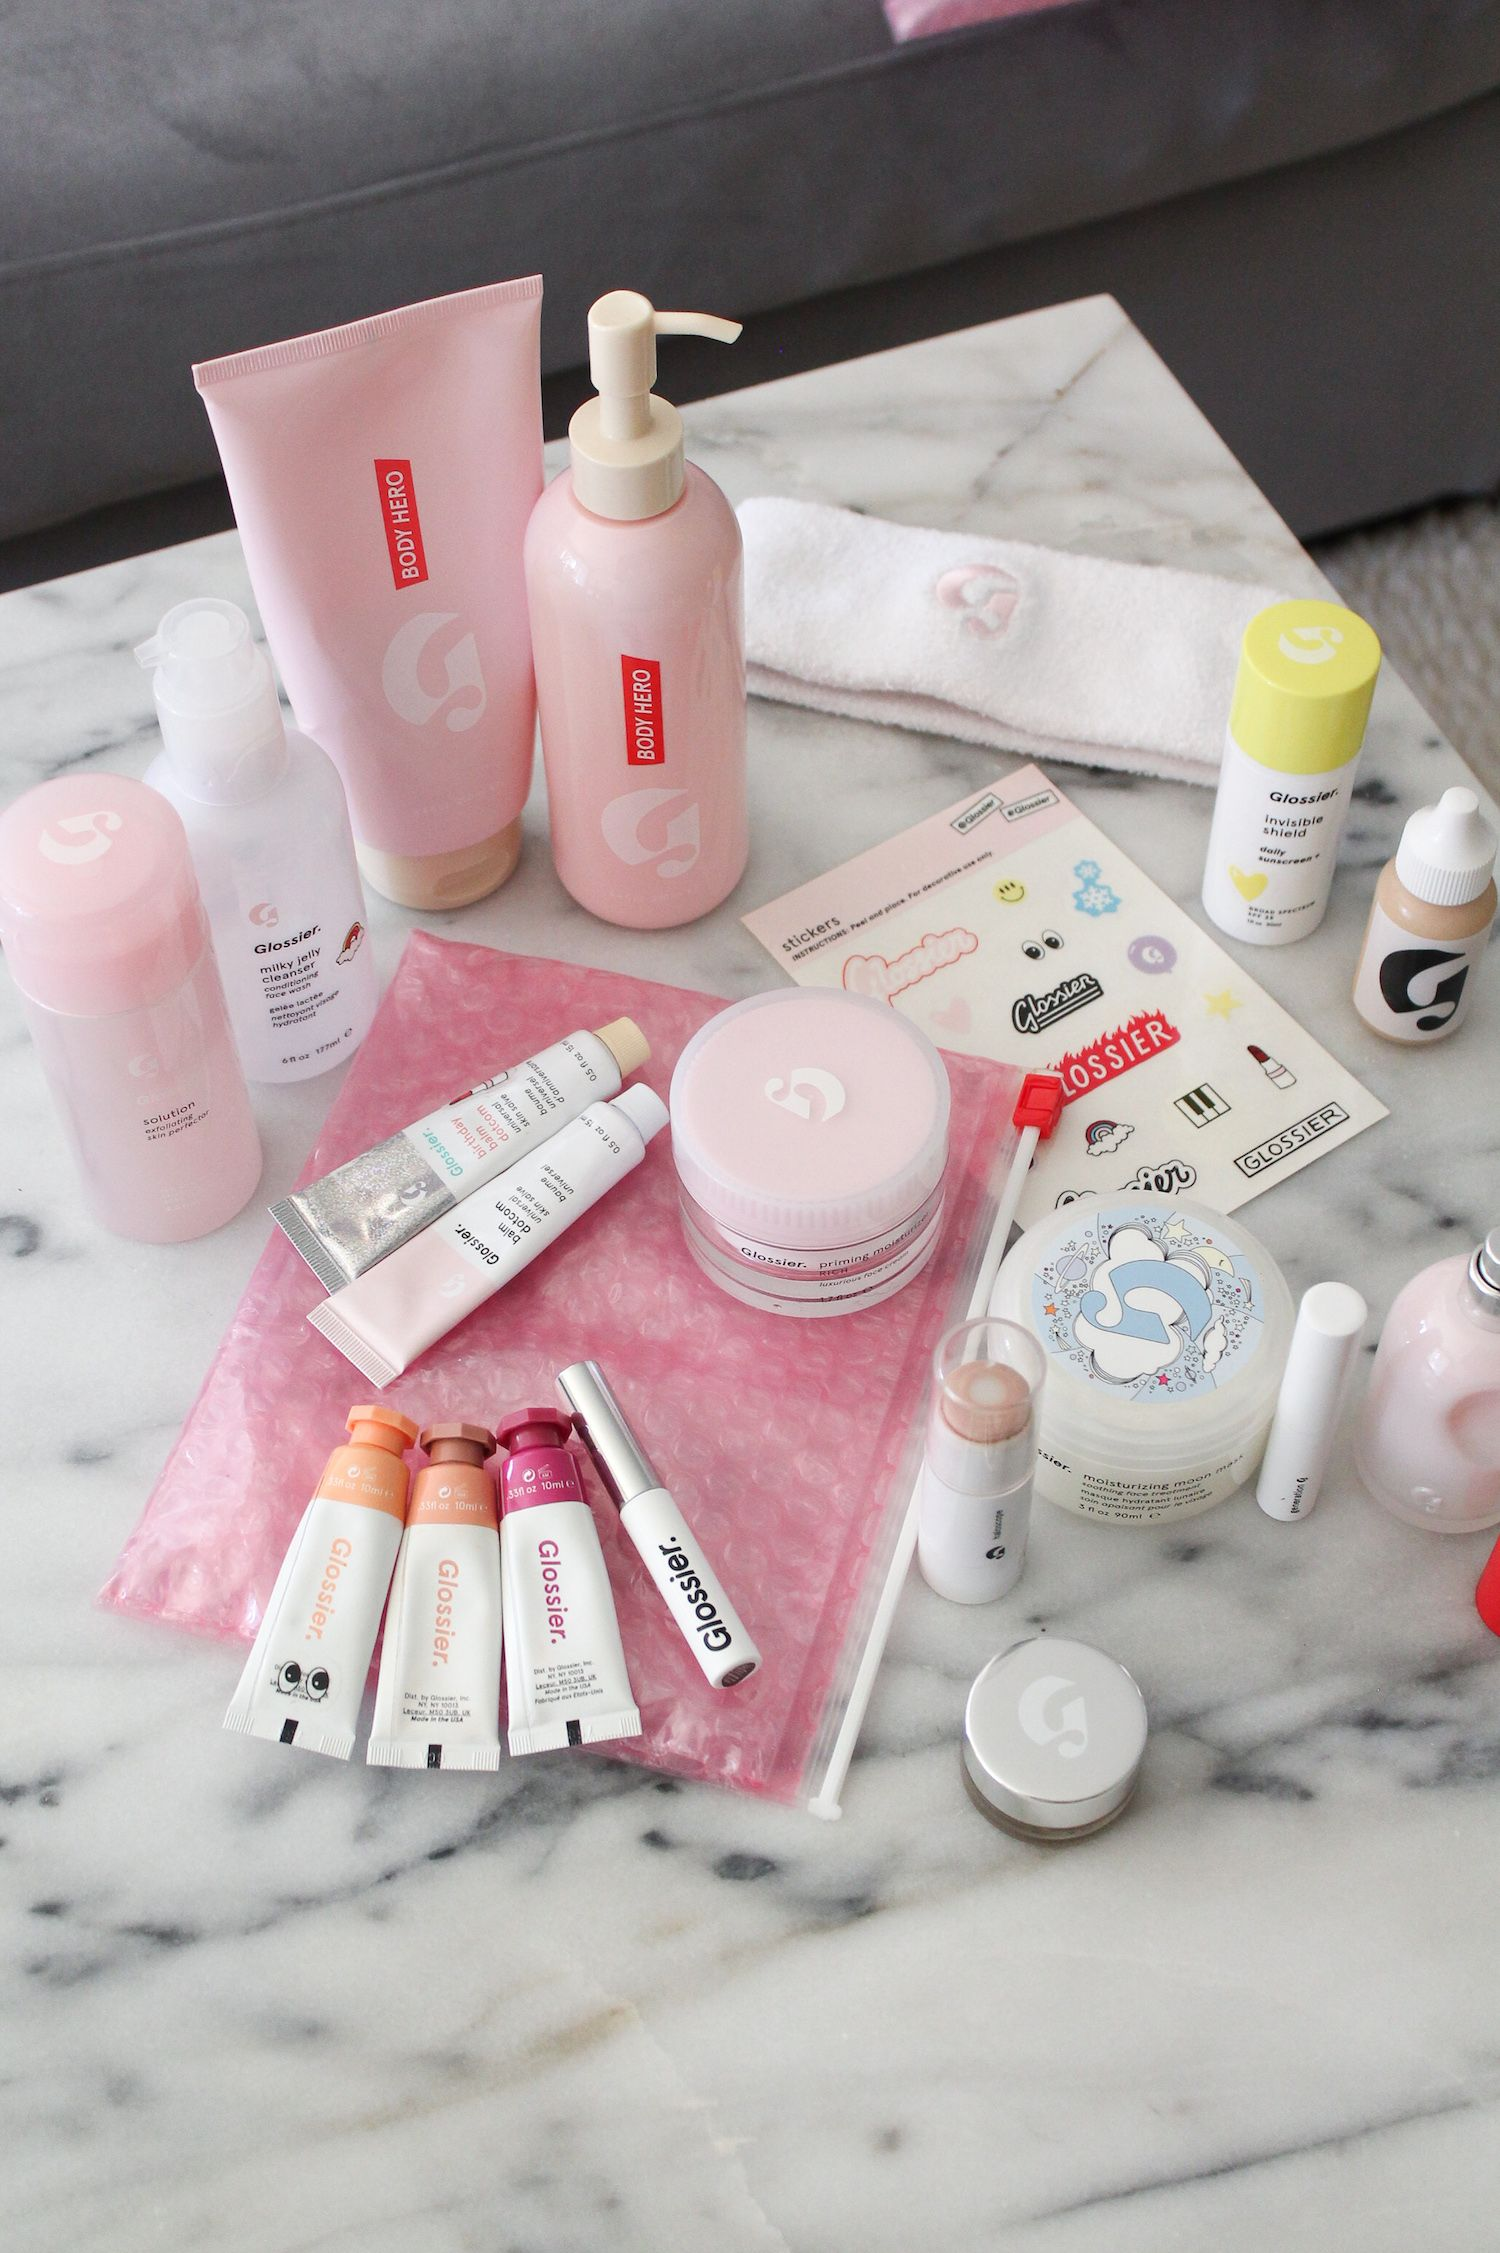 My Review of (Almost) Everything Made by Glossier is part of Glossy makeup - Over the past year I've accumulated my fair share of Glossier products  I'm  not a Glossier rep, and these are my personal honest opinions of the  products  I will continue to update as I try new launches from the brand